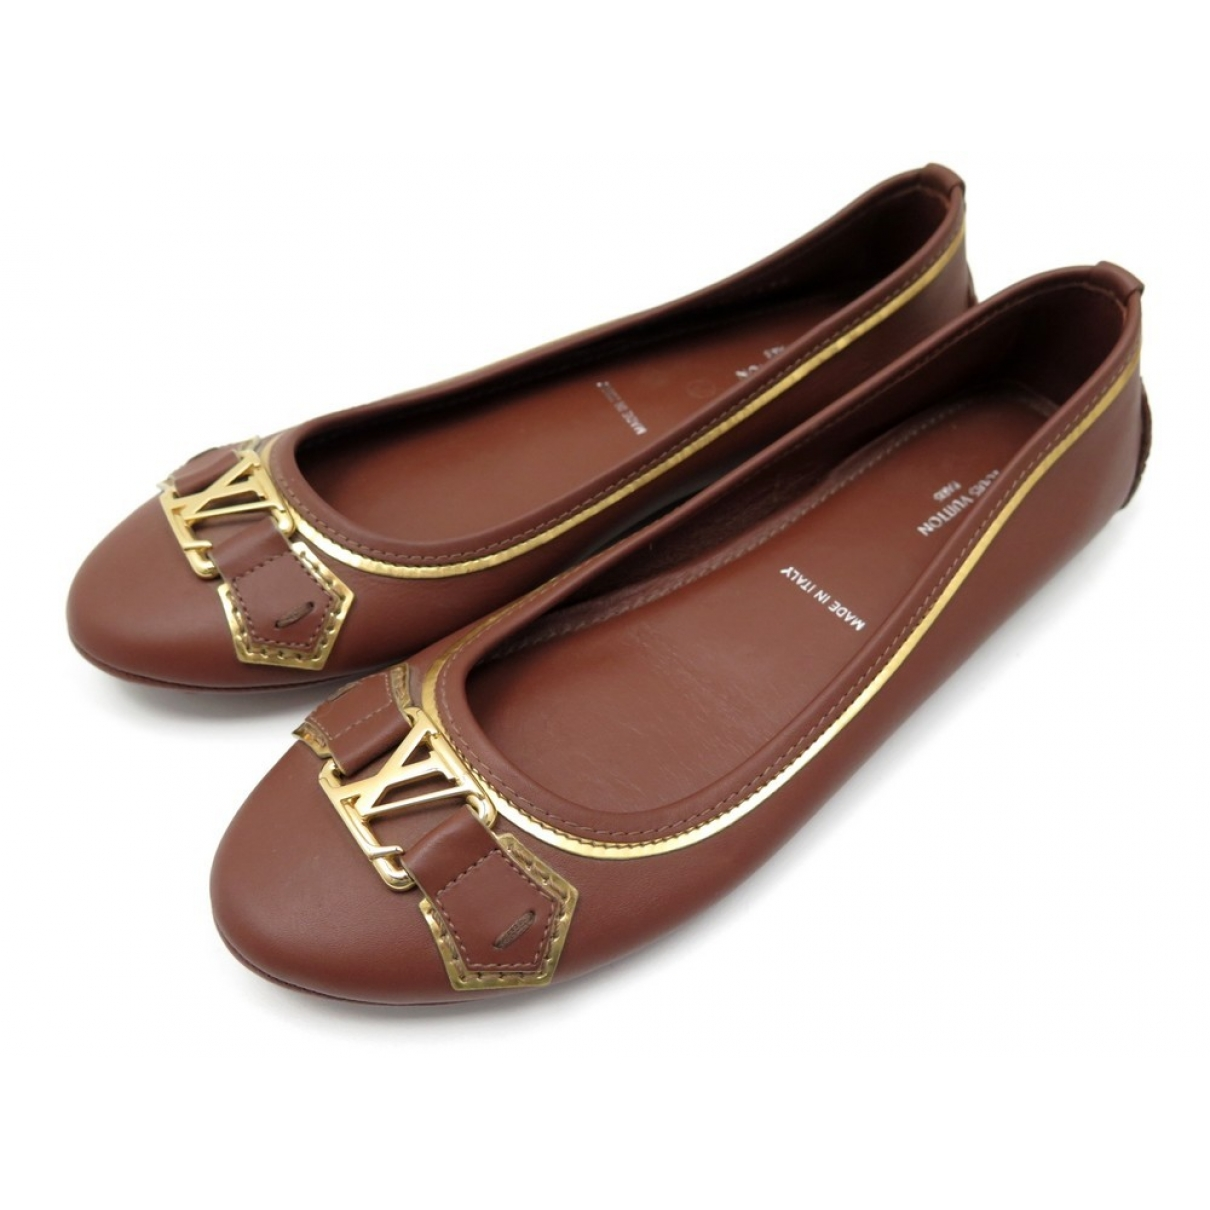 Louis Vuitton \N Brown Leather Ballet flats for Women 37 EU